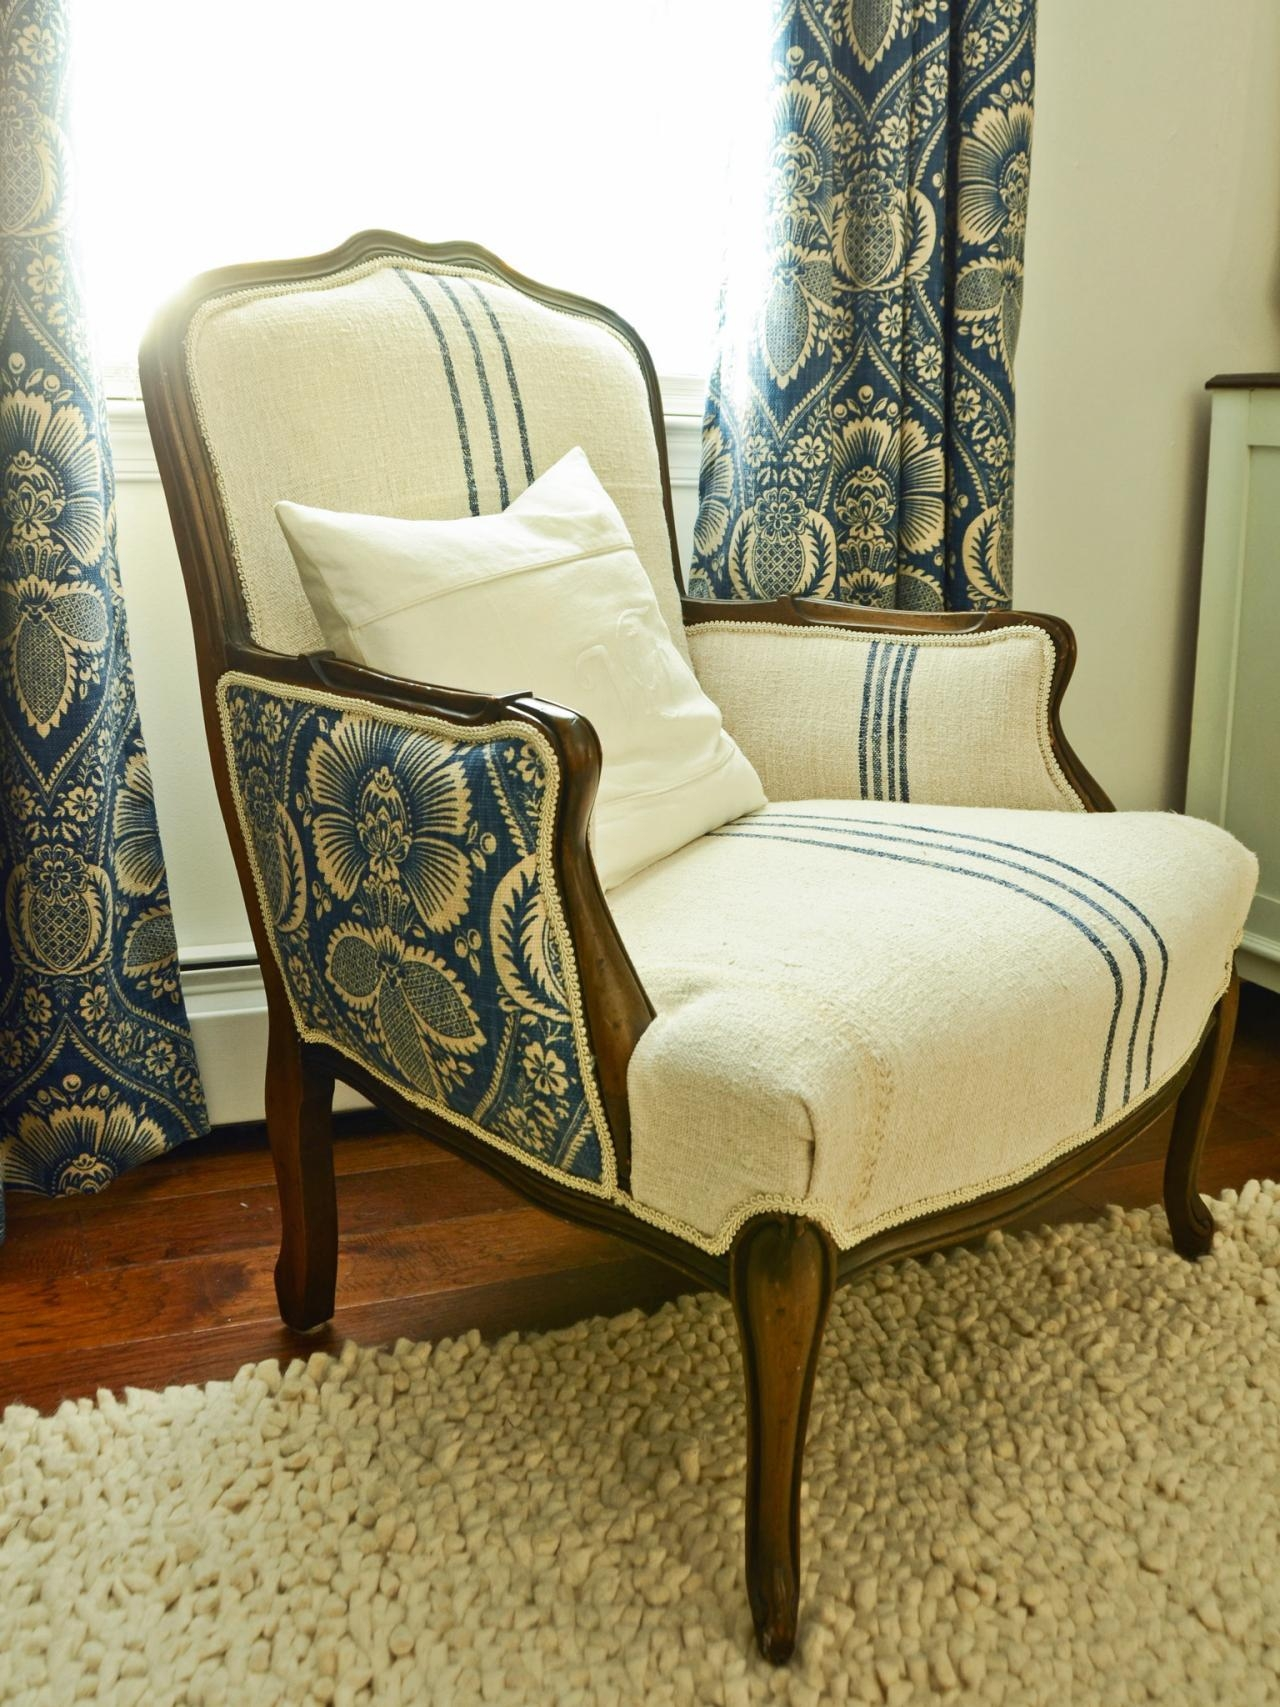 How To Reupholster An Arm Chair | Hgtv Within Reupholster Sofas Cushions (View 10 of 20)